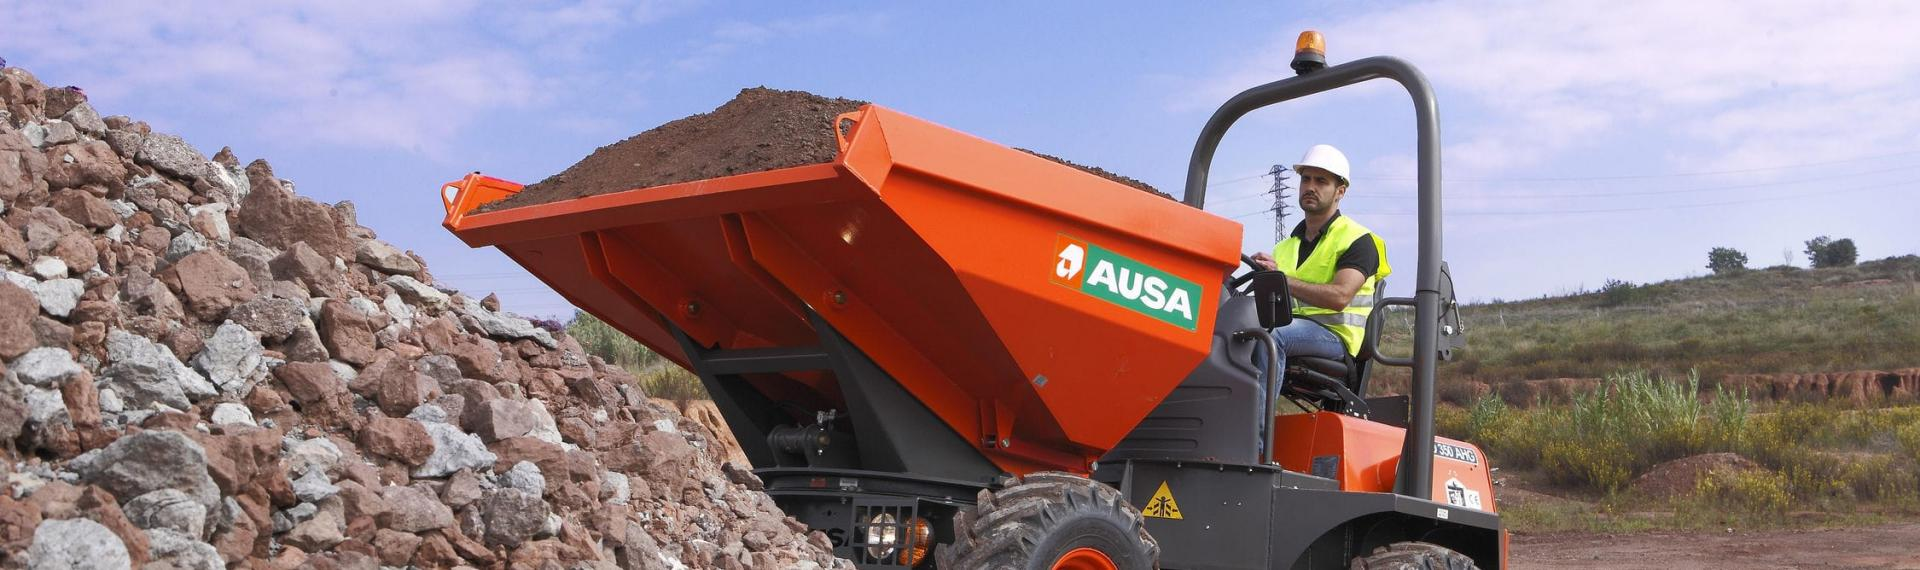 Ausa Site Dumpers